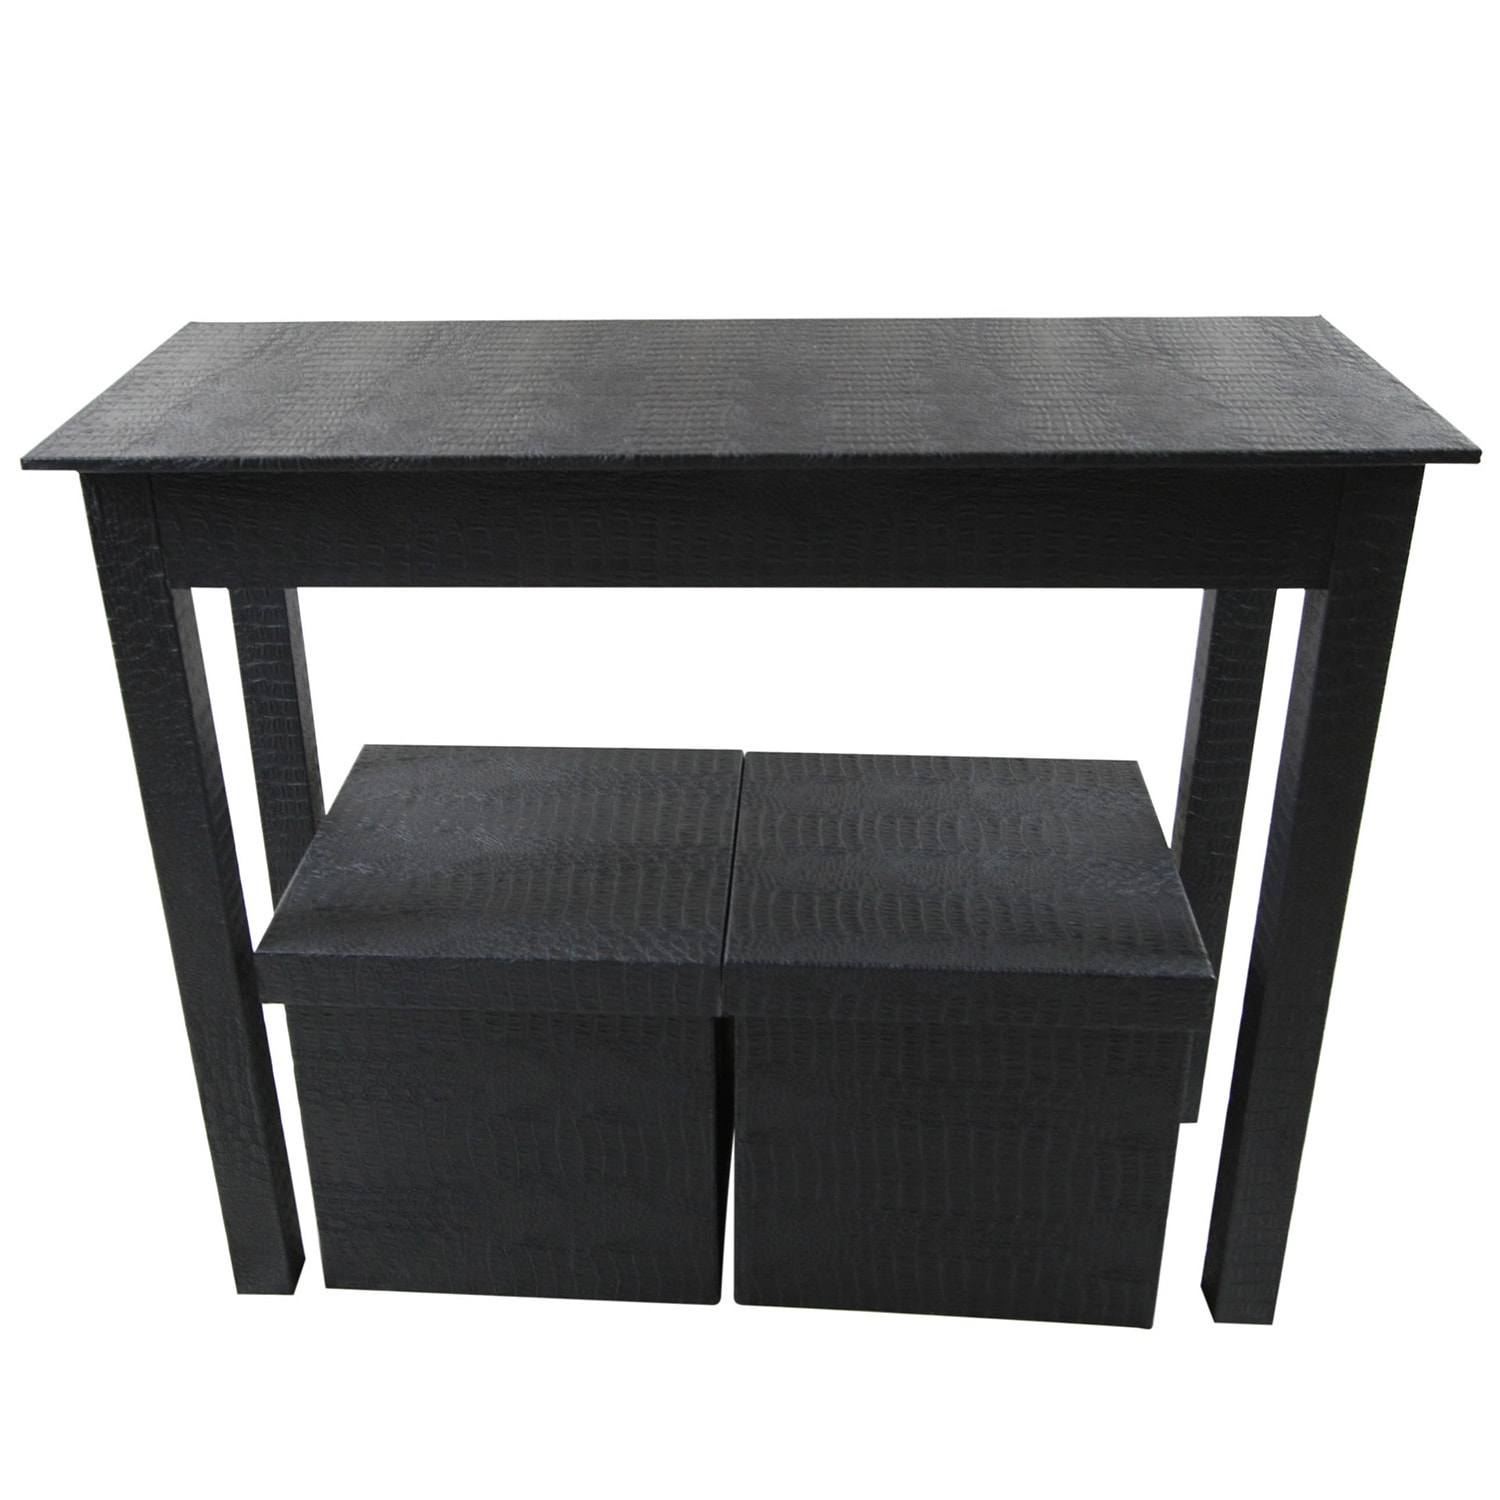 Patterned Black Leatherette Console